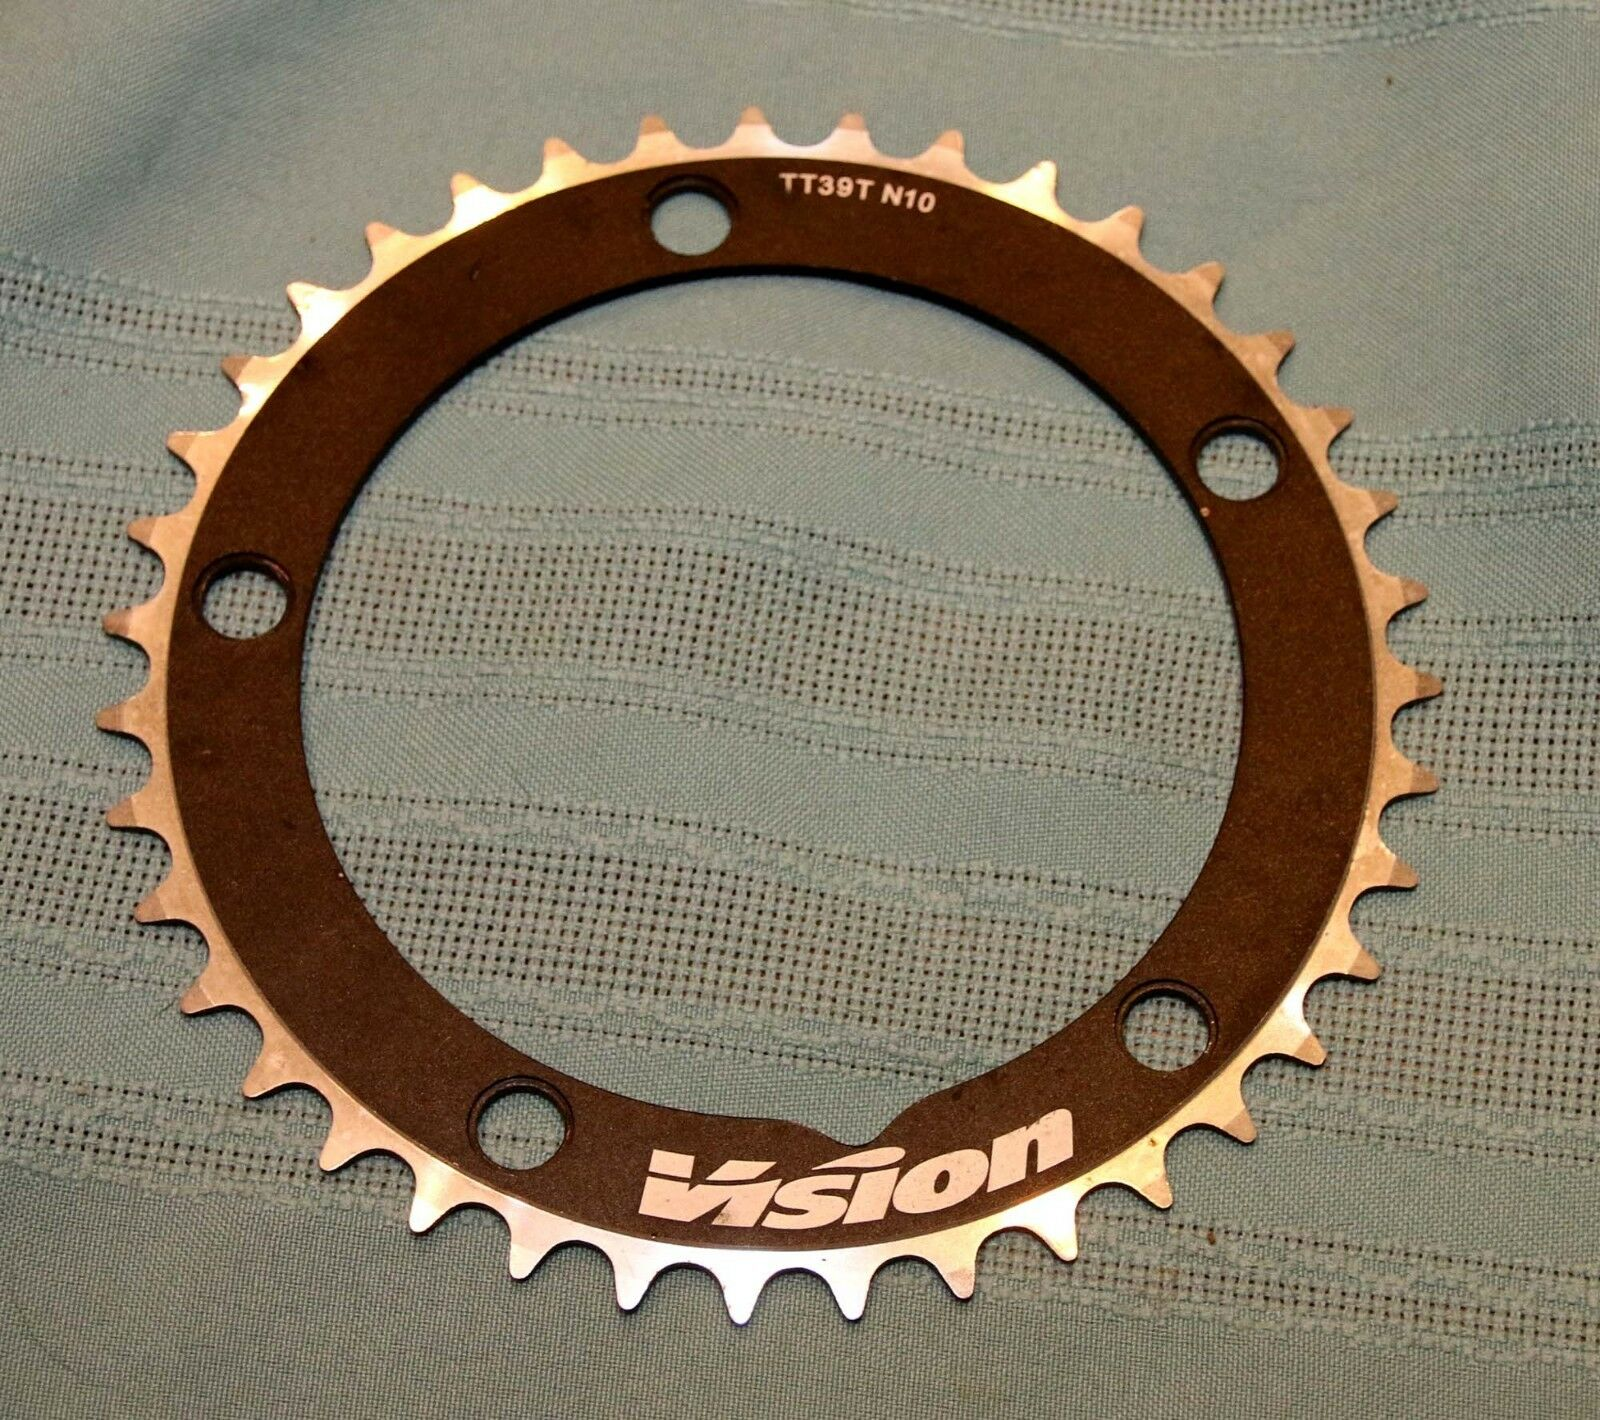 FSA Vision Time  Trial 39t 130BCD 5h N-10 speed chainring NEW   shop makes buying and selling